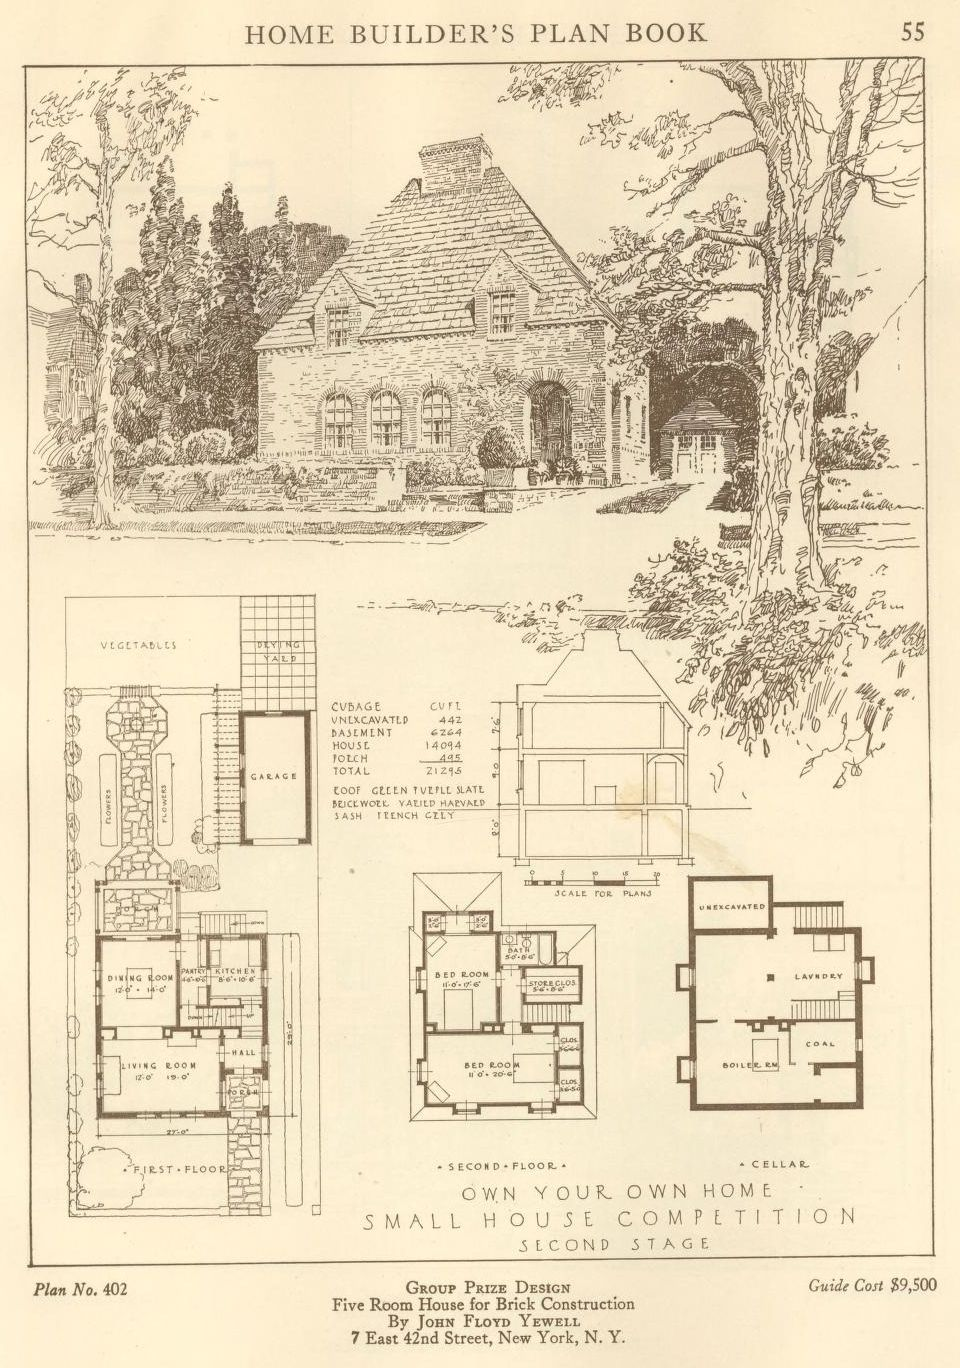 Home Builder's Plan Book : Building Plan Holding Corp